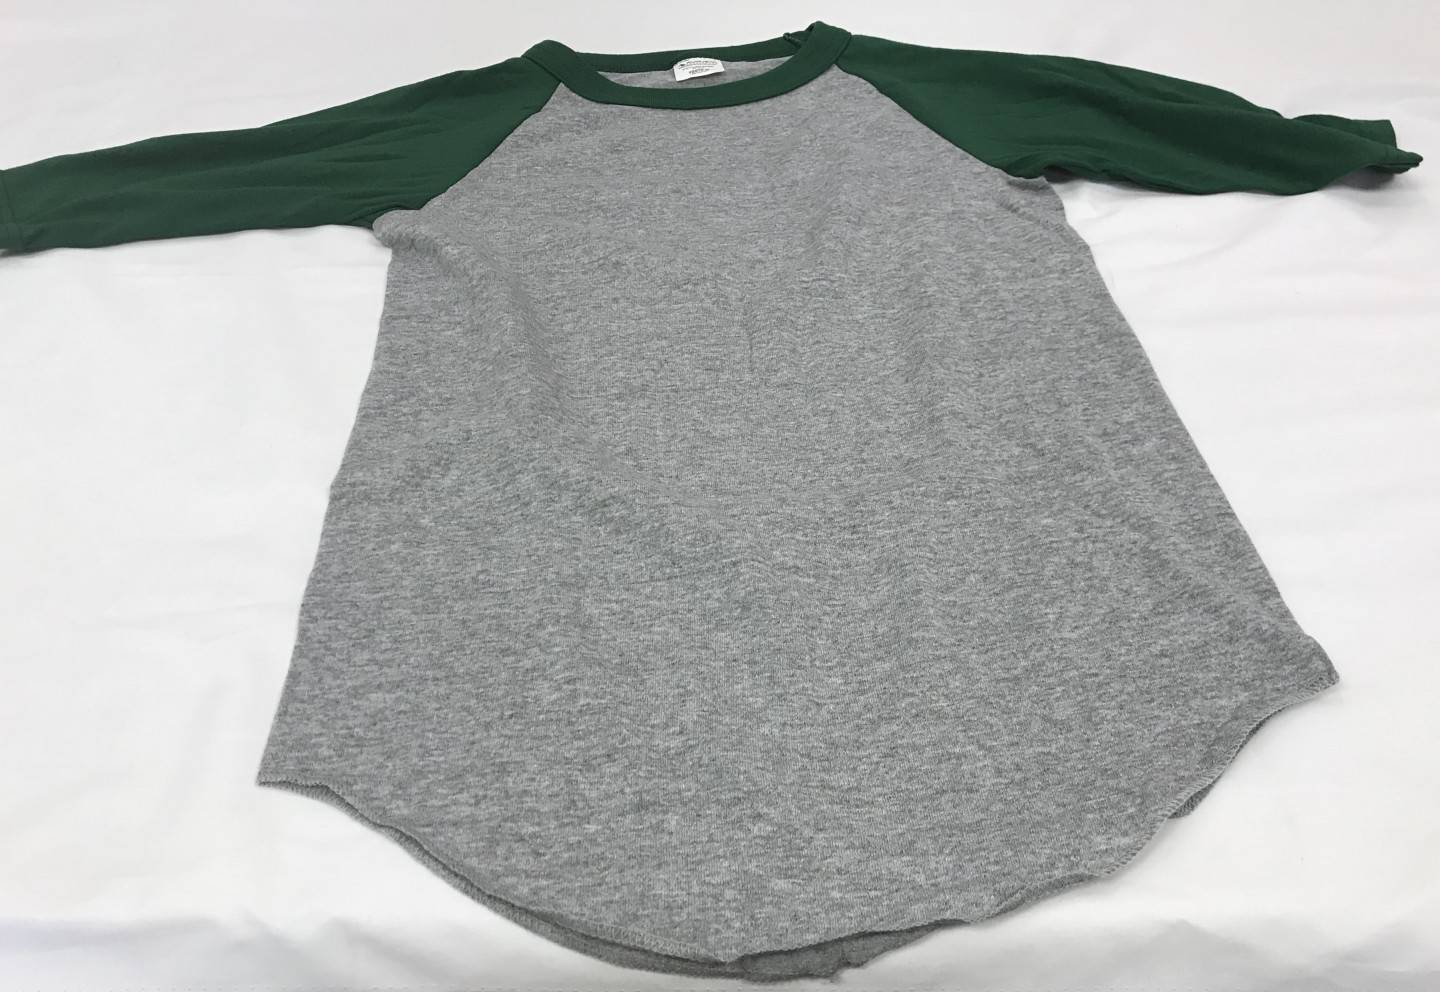 Dark green and gray baseball shirt with Property of St. Thomas the Apostle logo